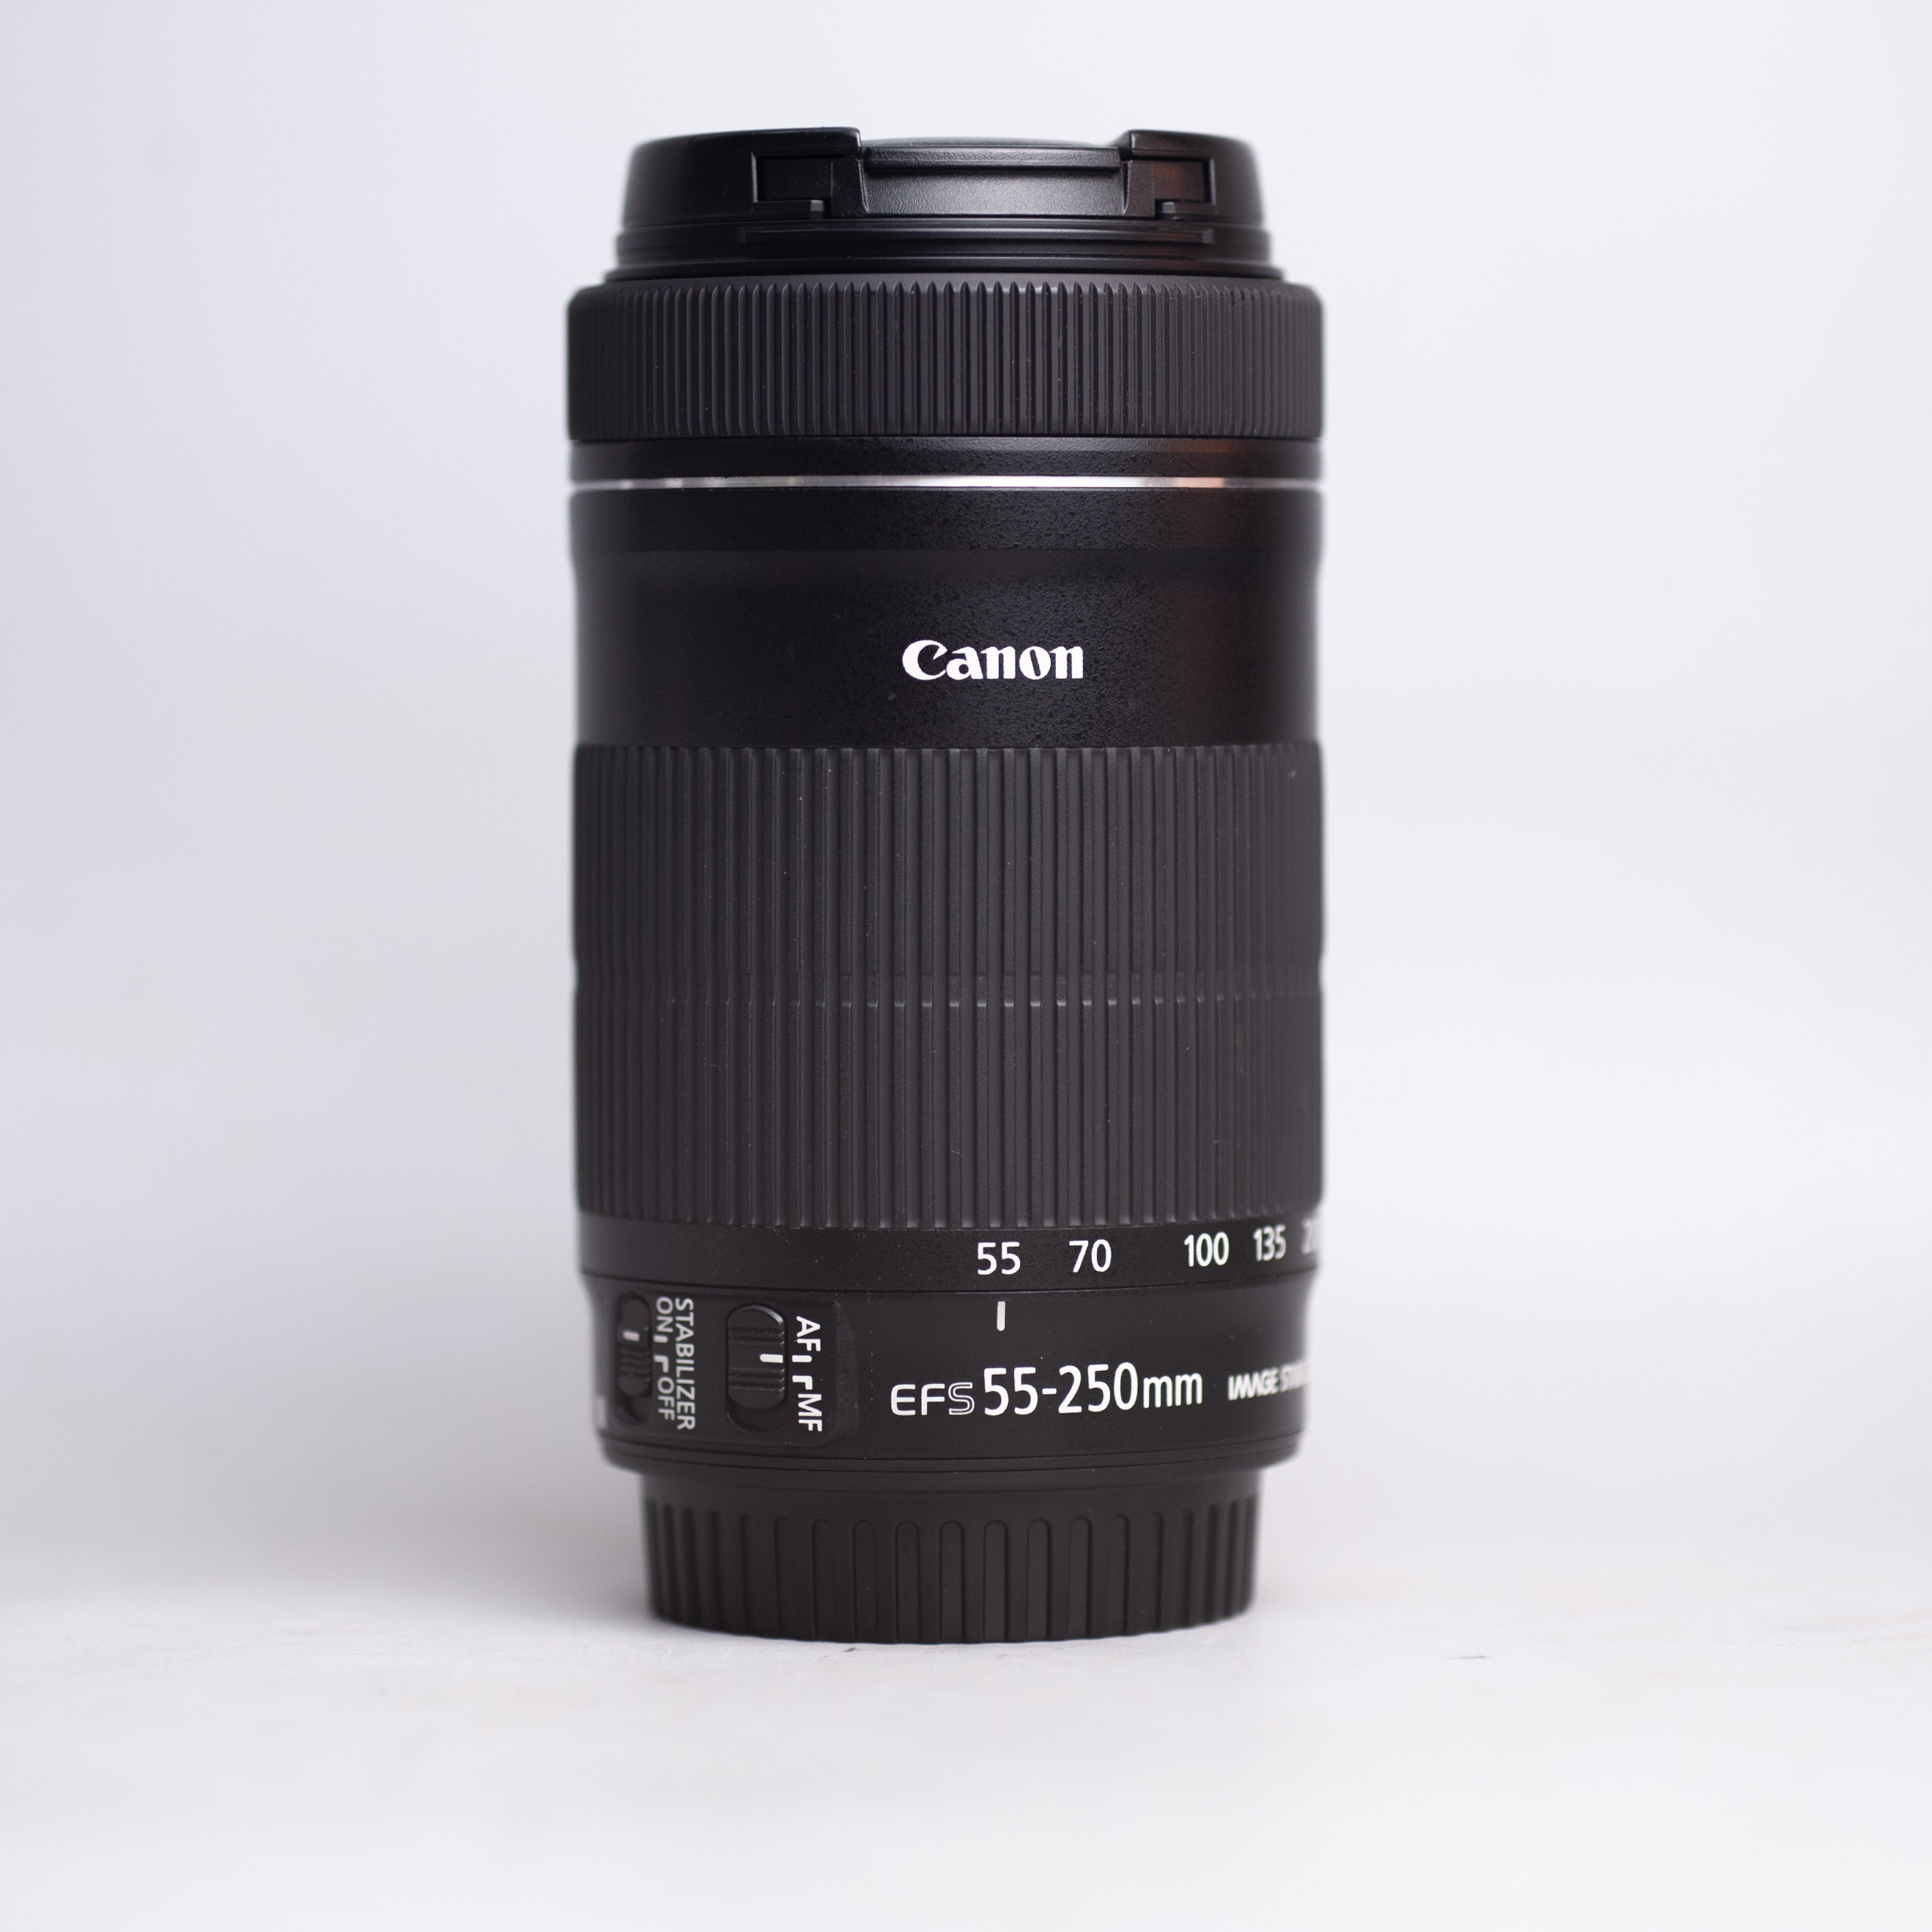 canon-ef-s-55-250mm-f4-5-6-is-stm-55-250-f4-5-6-hkg